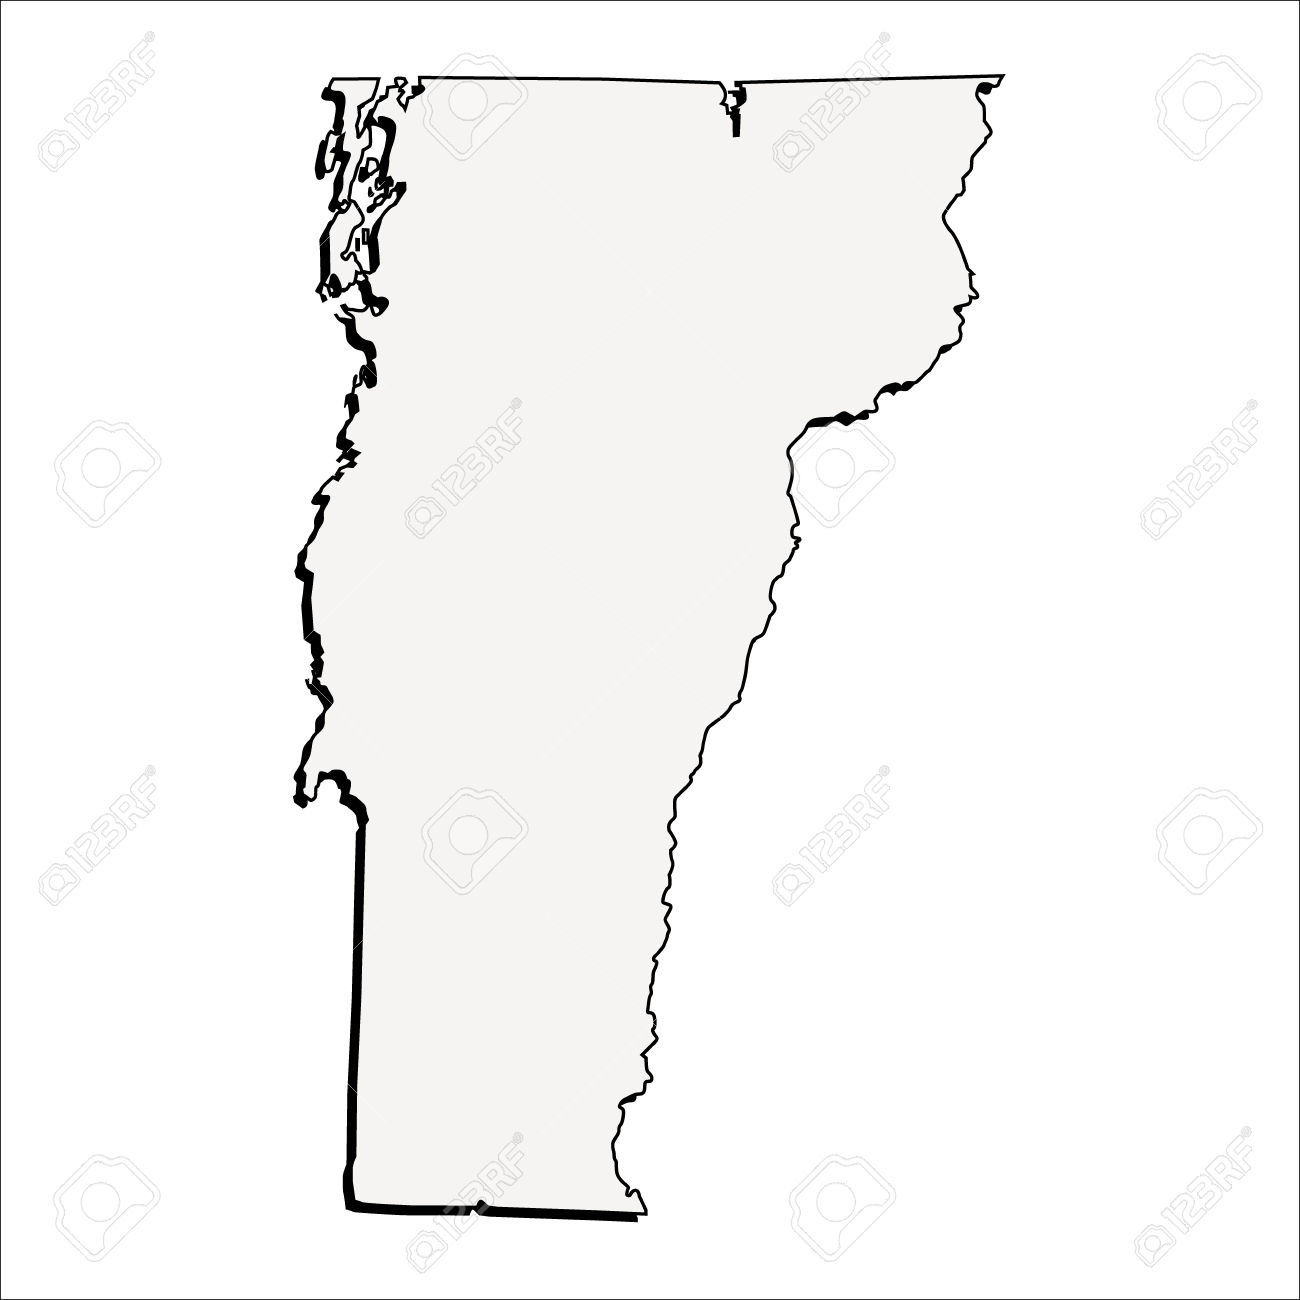 vector vermont state 3d outline map royalty free cliparts vectors - Simple Outline Pictures